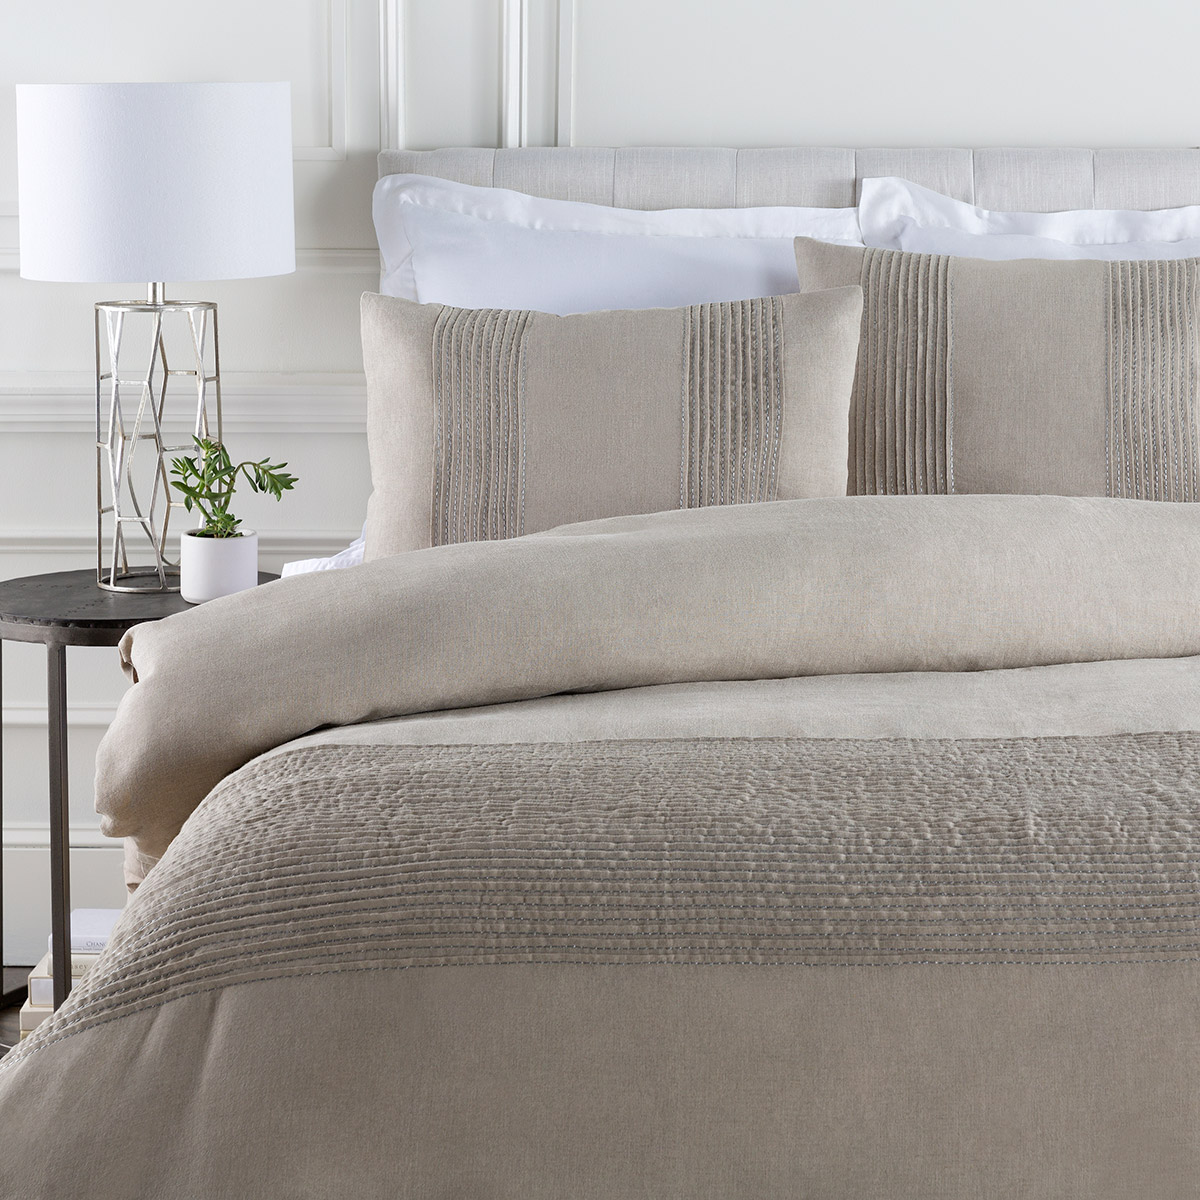 Brilliant Boost Home Twin Duvet Covers Ikea Twin Duvet Covers Urban Outfitters Surya Upton Duvet Set houzz-03 Twin Duvet Cover